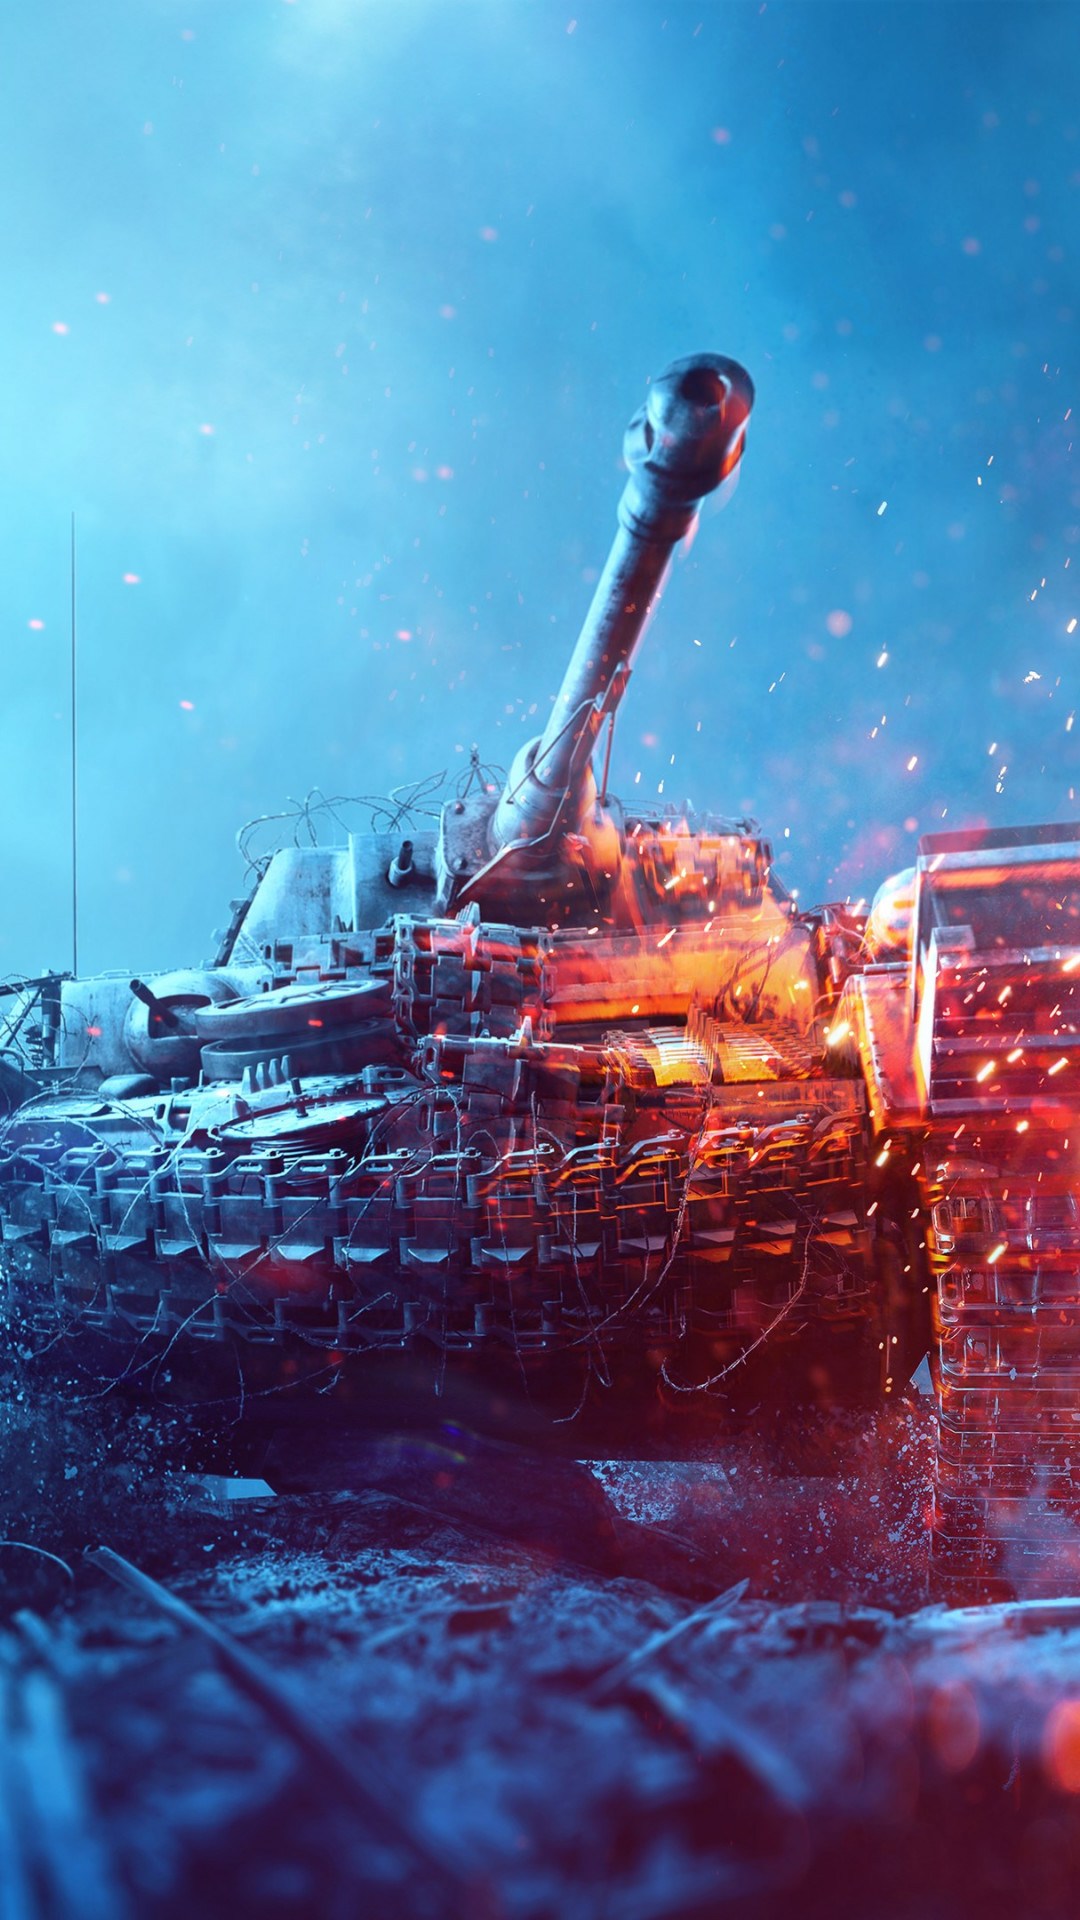 Download Wallpaper Battlefield 5 Poster With Tanks 1080x1920